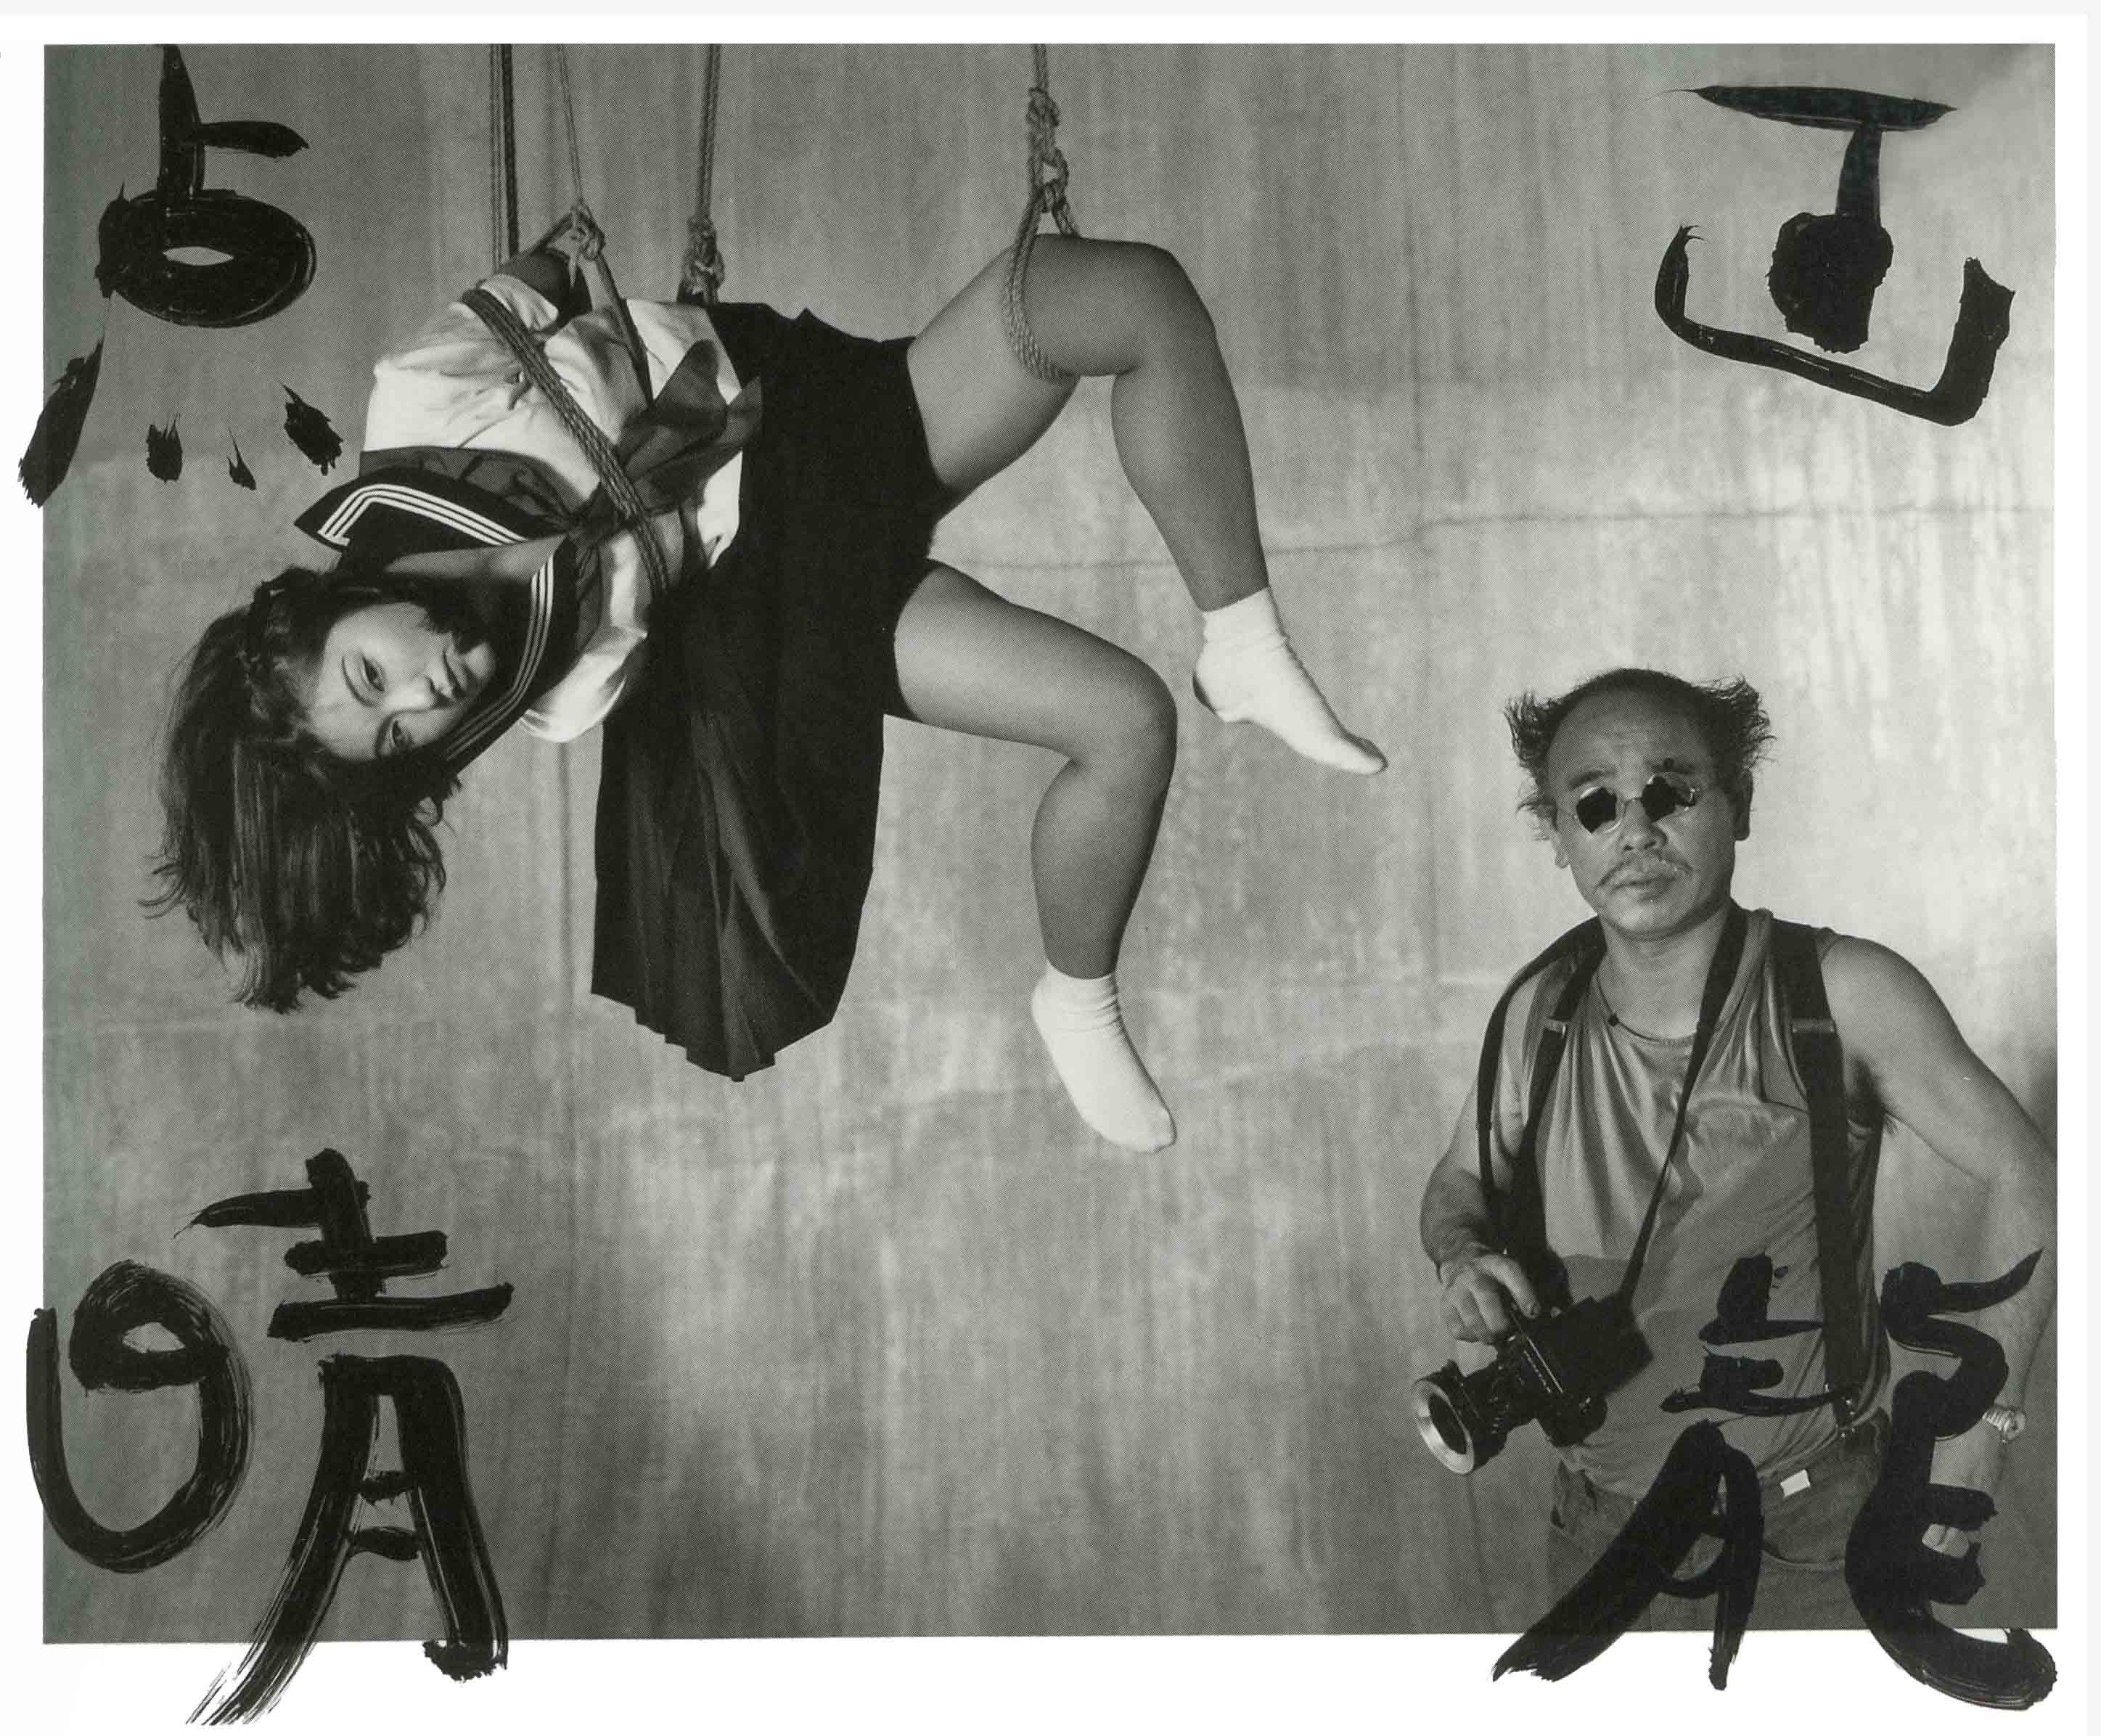 Nobuyoshi Araki_Marvelous Tales of Black Ink (Bokuj+½ Kitan) 068, 2007, Private Collection, New York